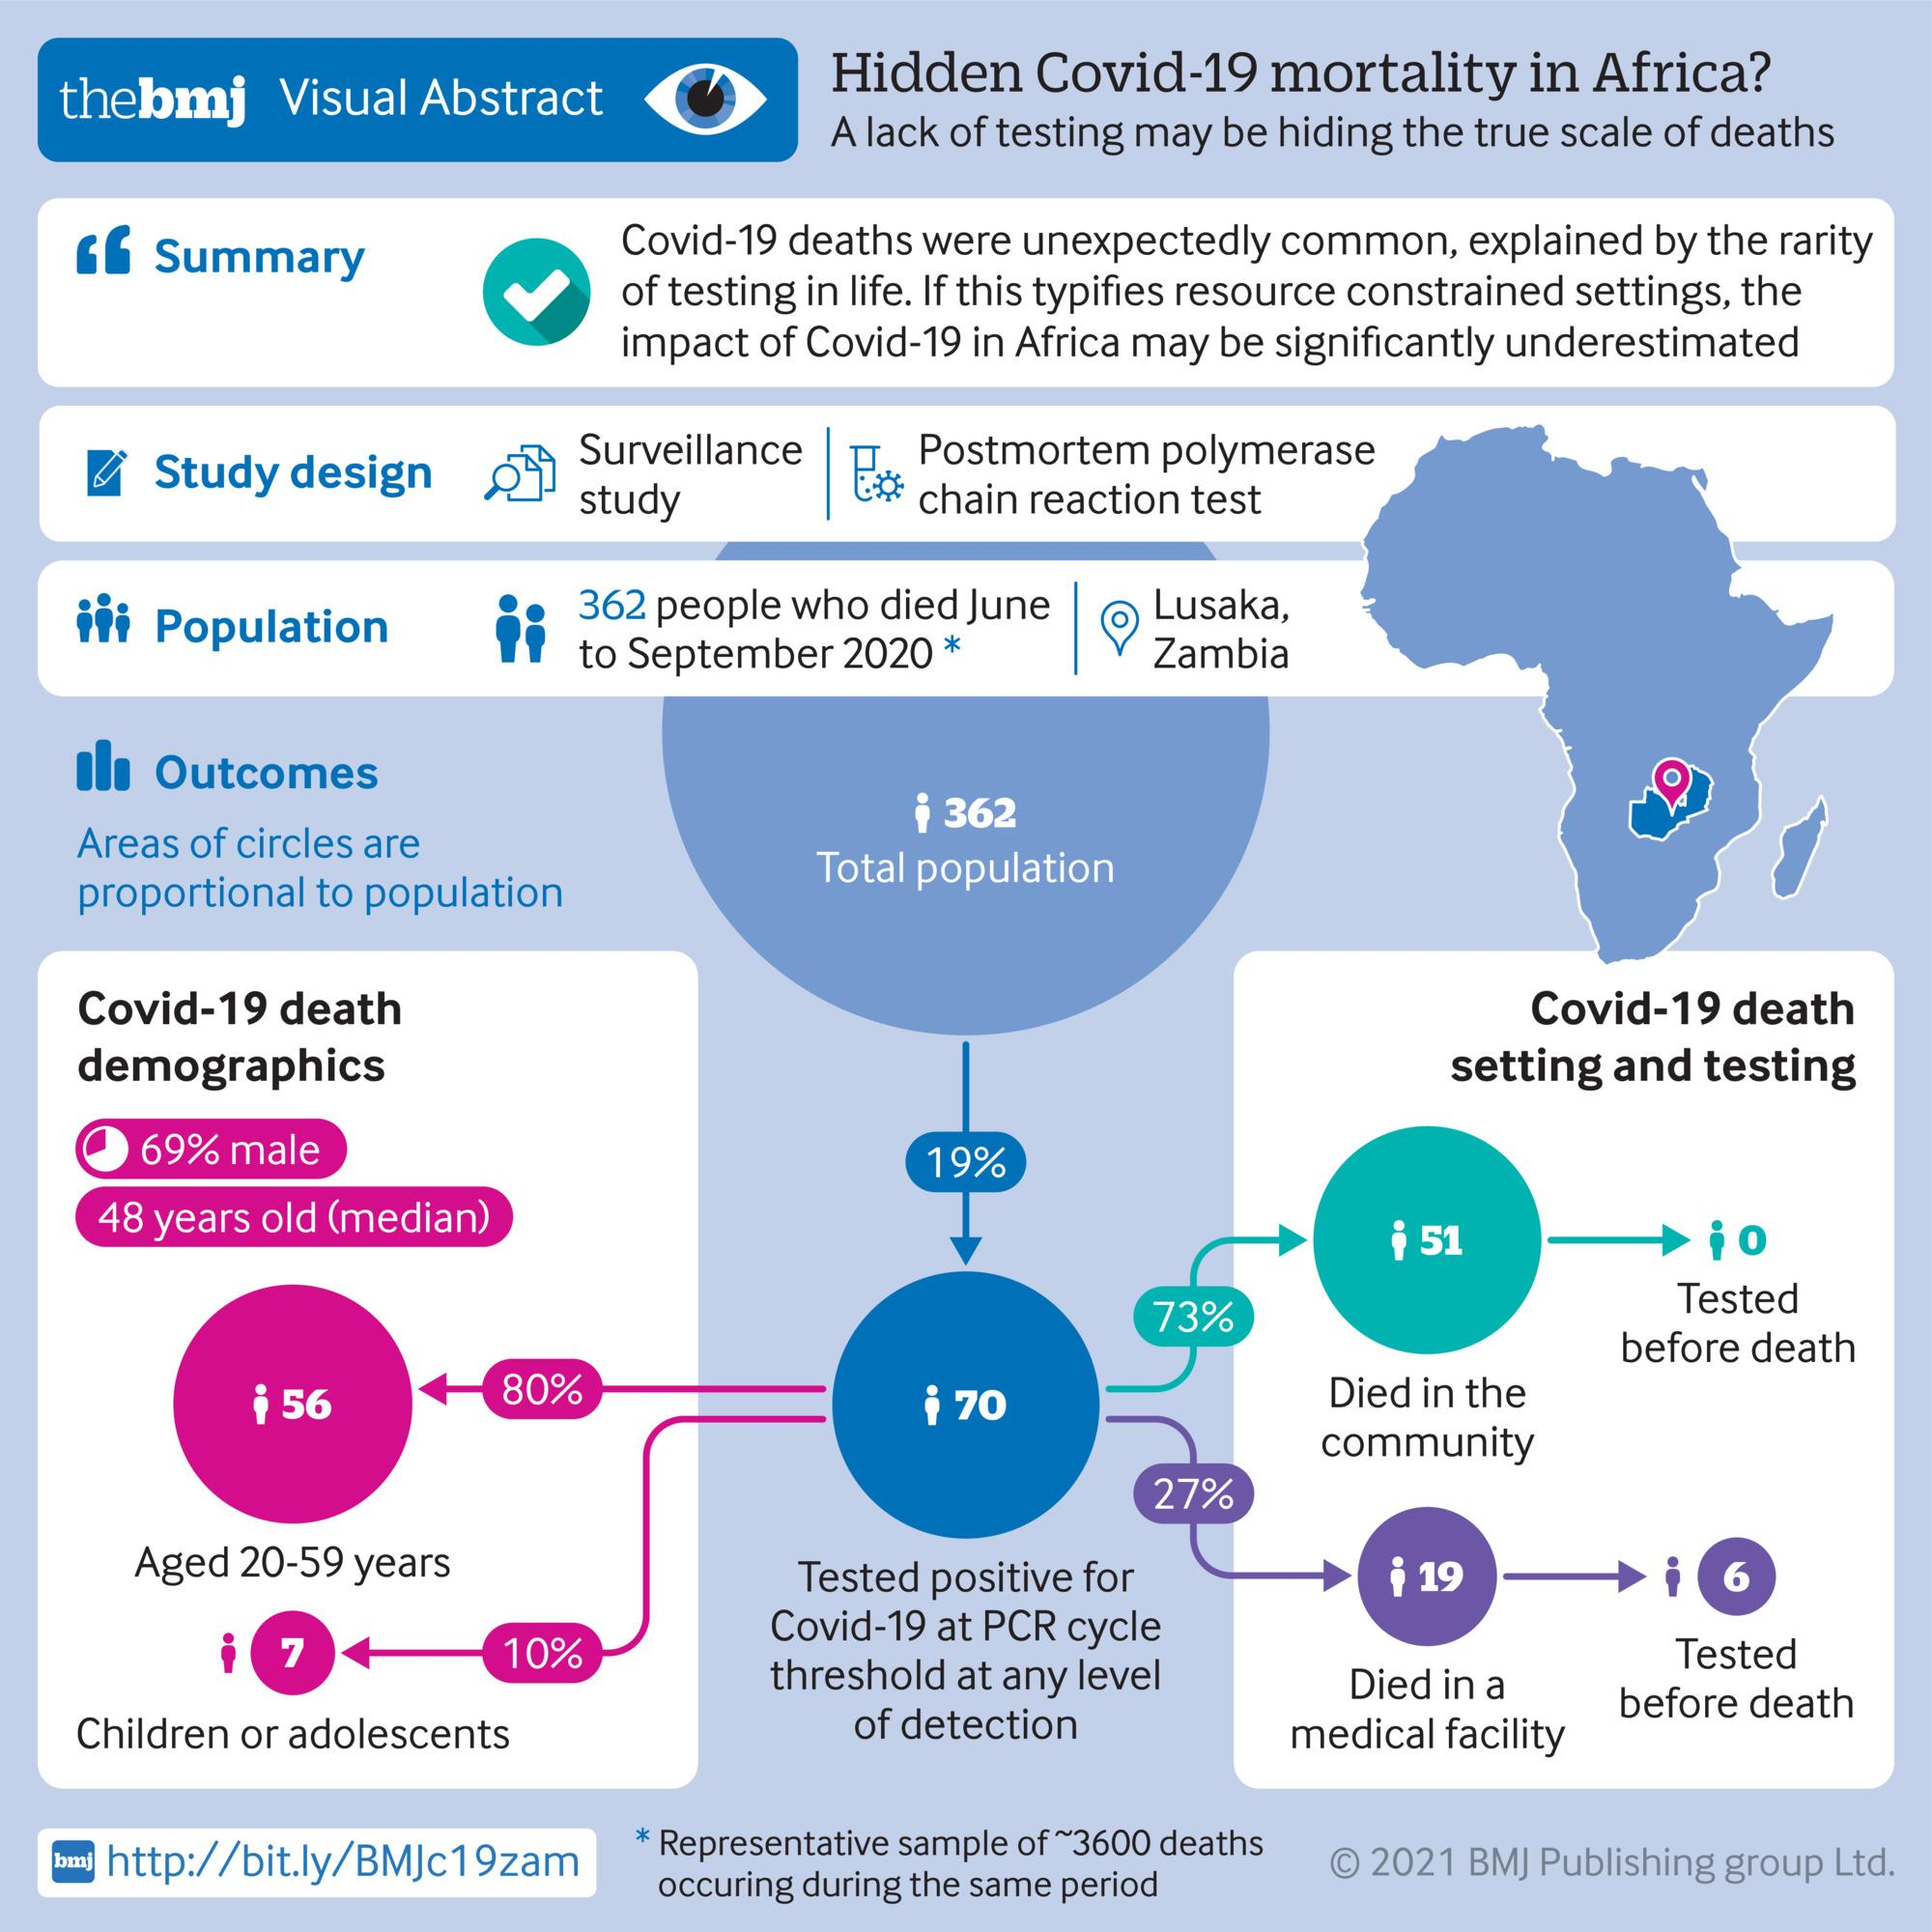 Hidden Covid-19 mortality in Africa? A lack of testing may be hiding the true scale of deaths